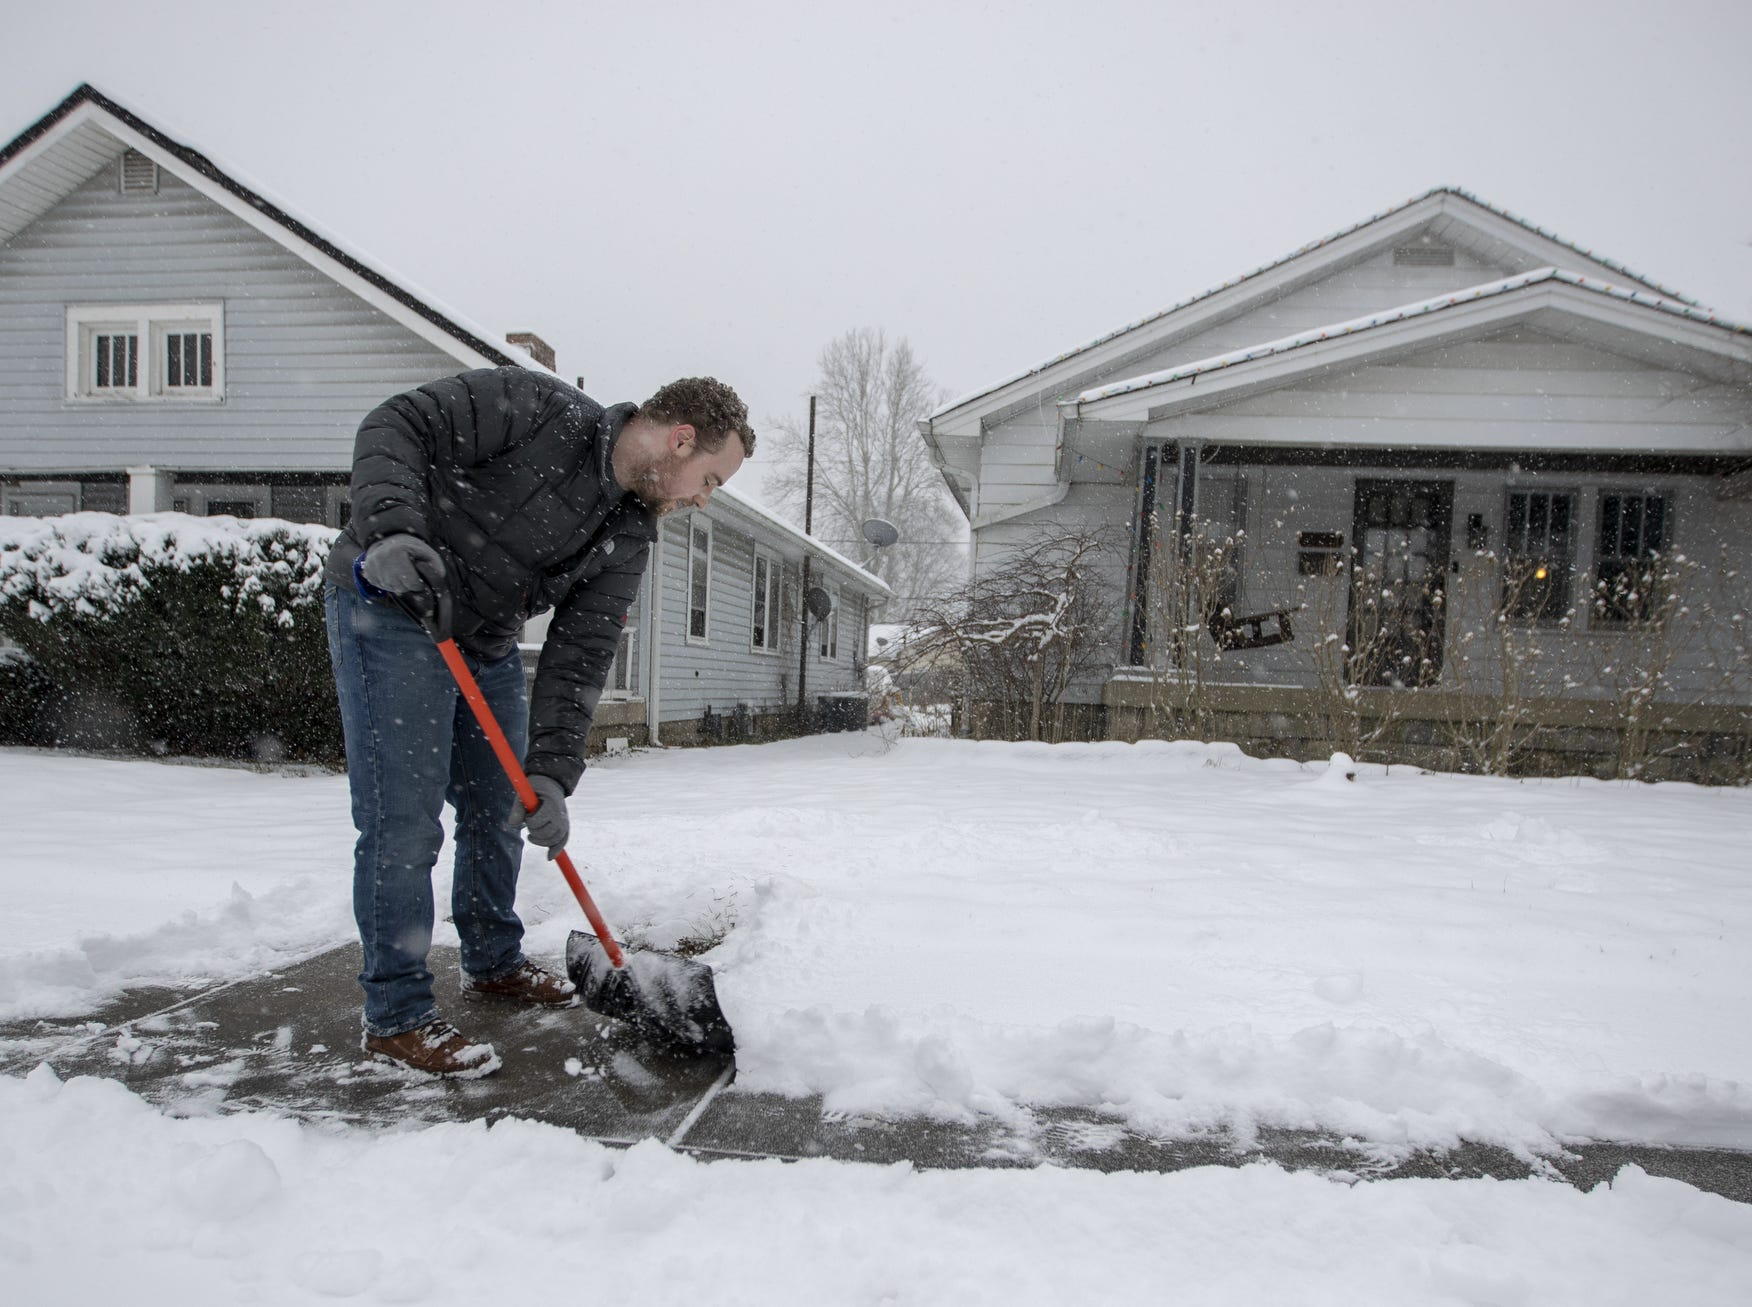 Evan Rouse shovels snow near his east side home on a day where 5-7 inches of snow is expected to fall in Central Indiana, Indianapolis, Saturday, Jan. 12, 2019.